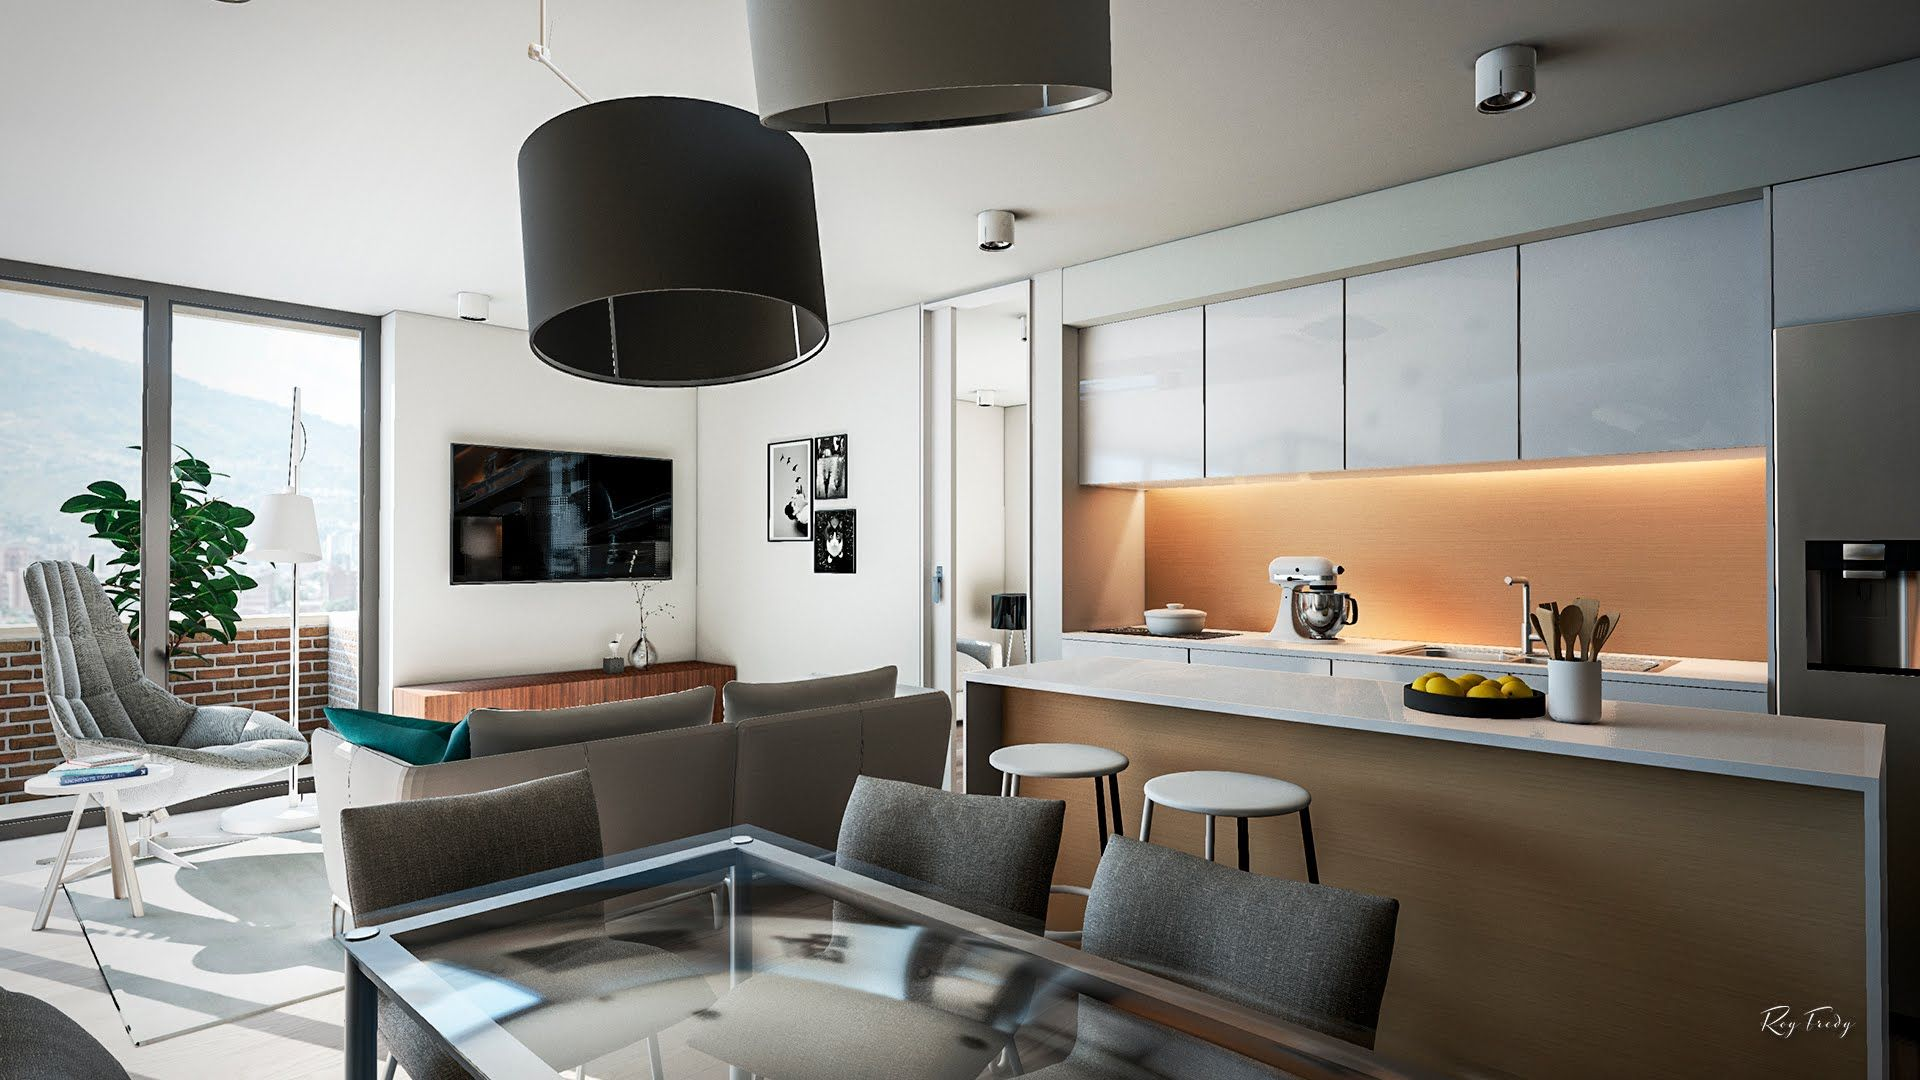 Unreal Engine 4 Apartment Interior Archviz Small Apartment Interior Apartment Interior Nyc Interior Design